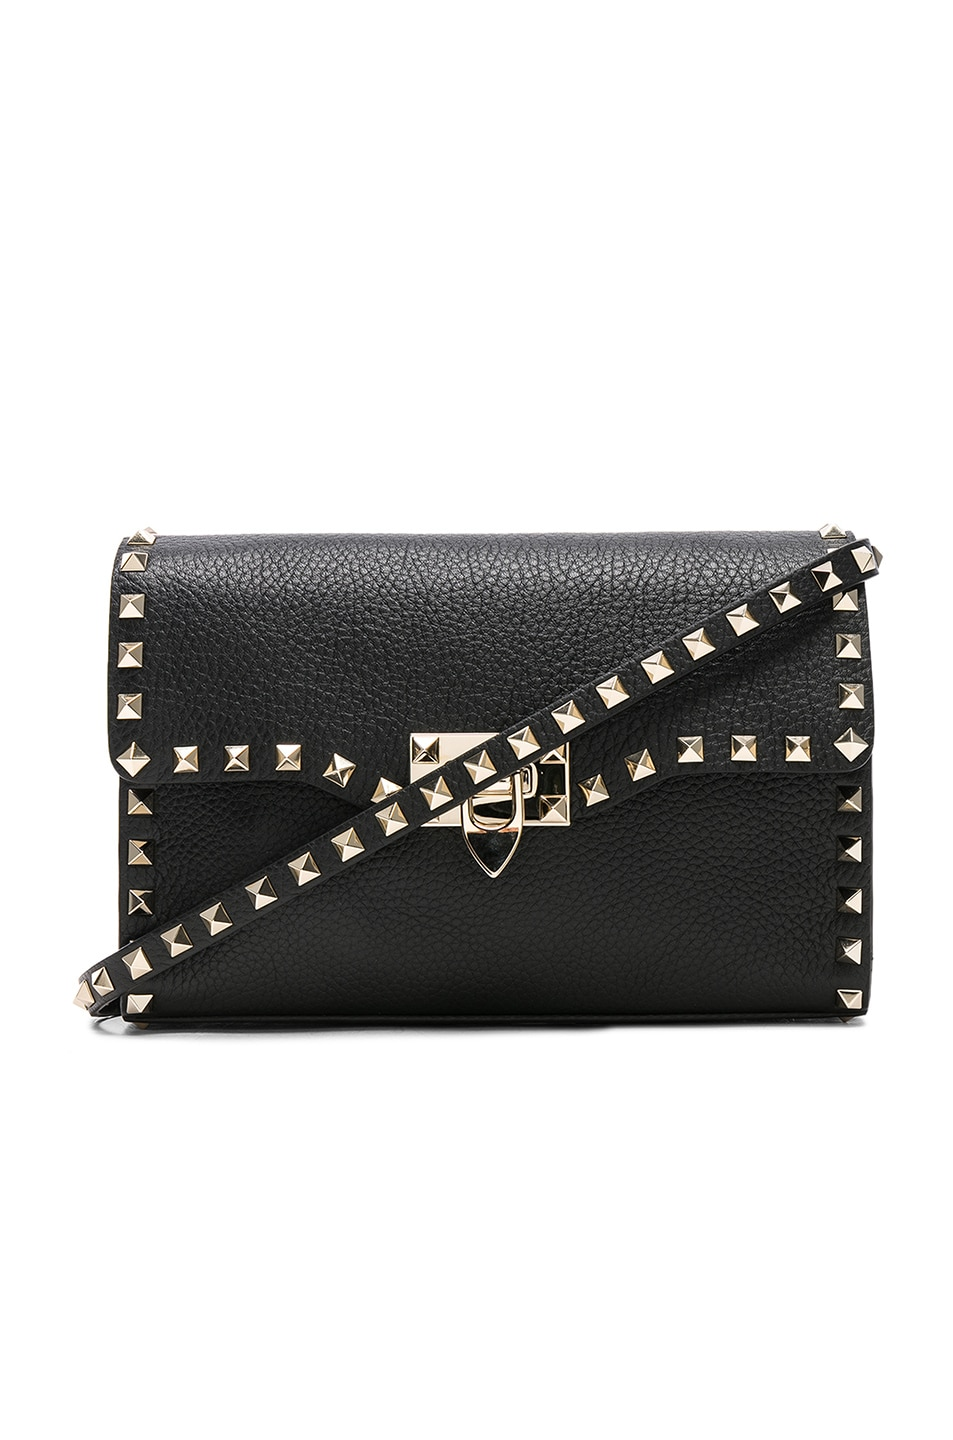 Image 1 of Valentino Medium Rockstud Shoulder Bag in Black